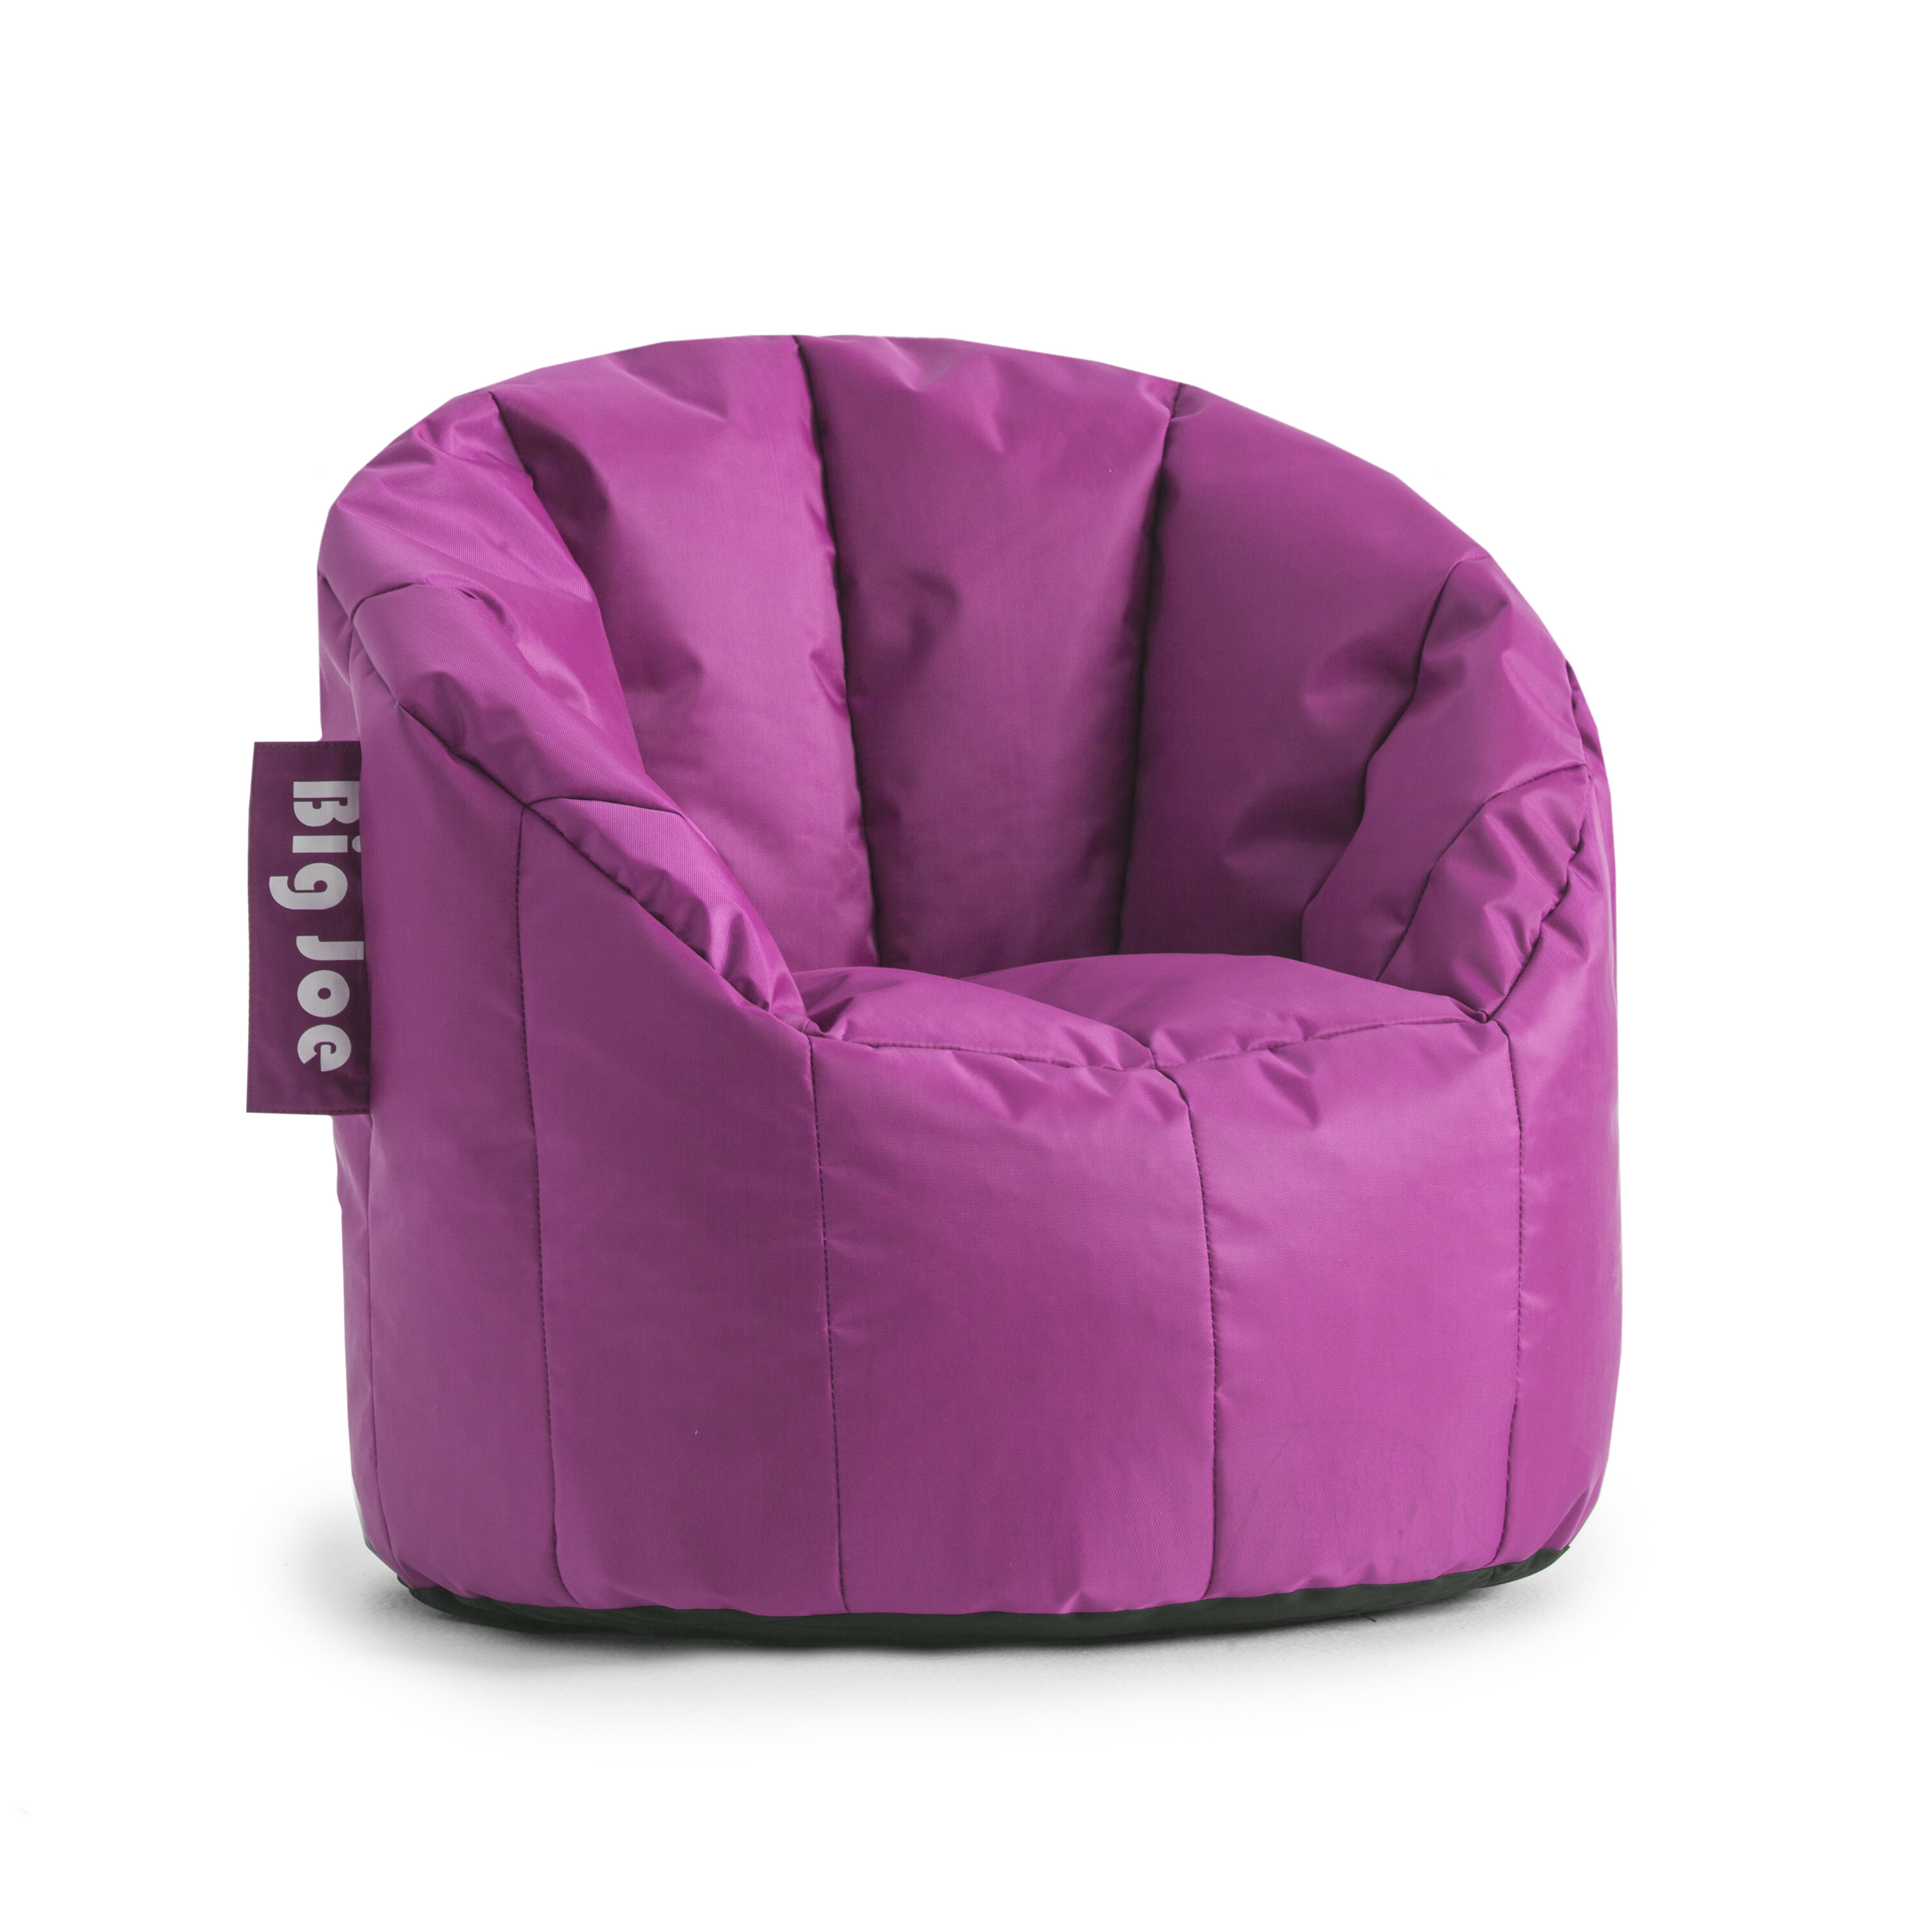 Comfort Research Big Joe Kids Small Bean Bag Chair Lounger